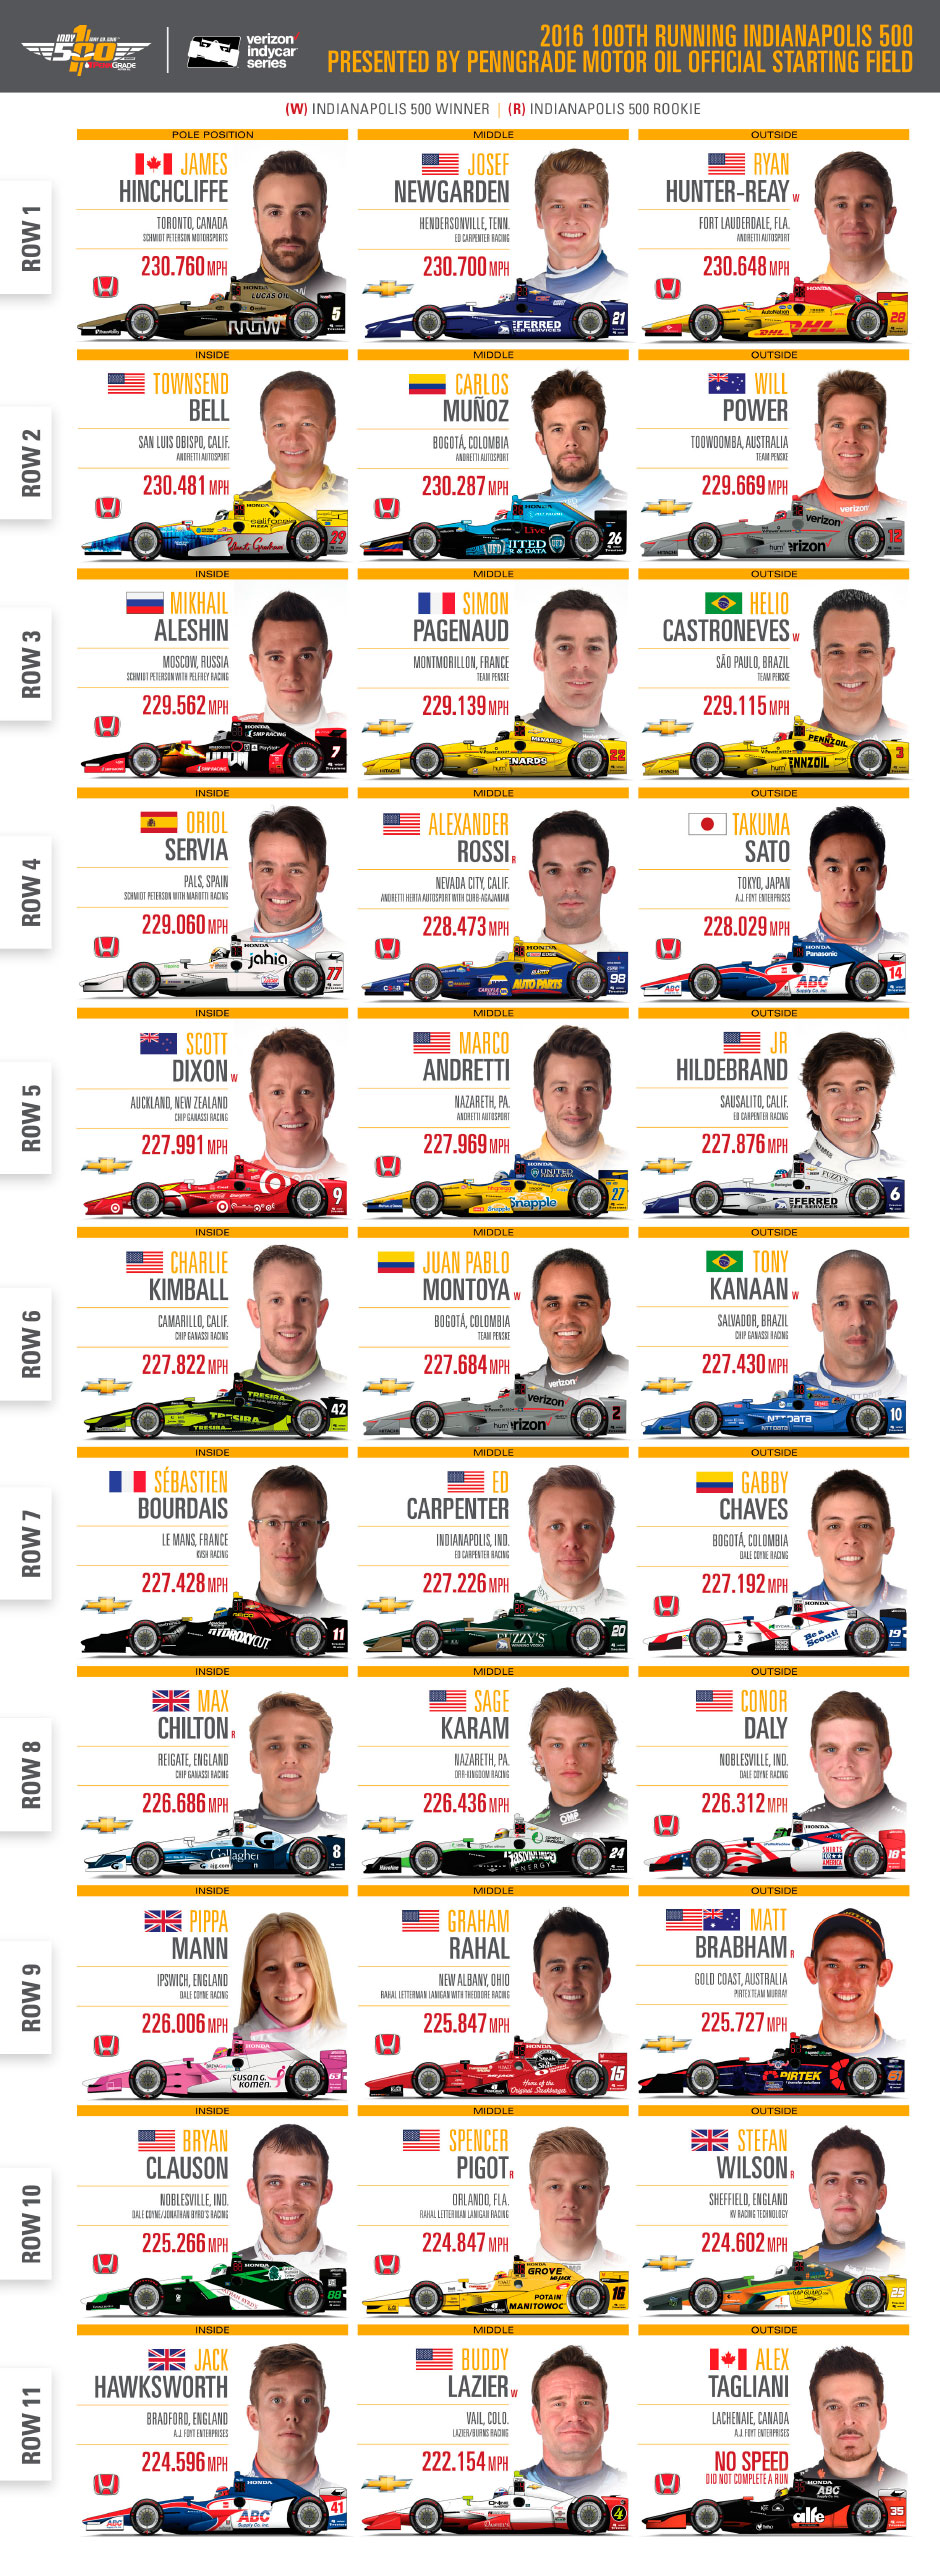 Indy 500 lineup, starting grid for 2017 race at Indy 500 starting lineup photos